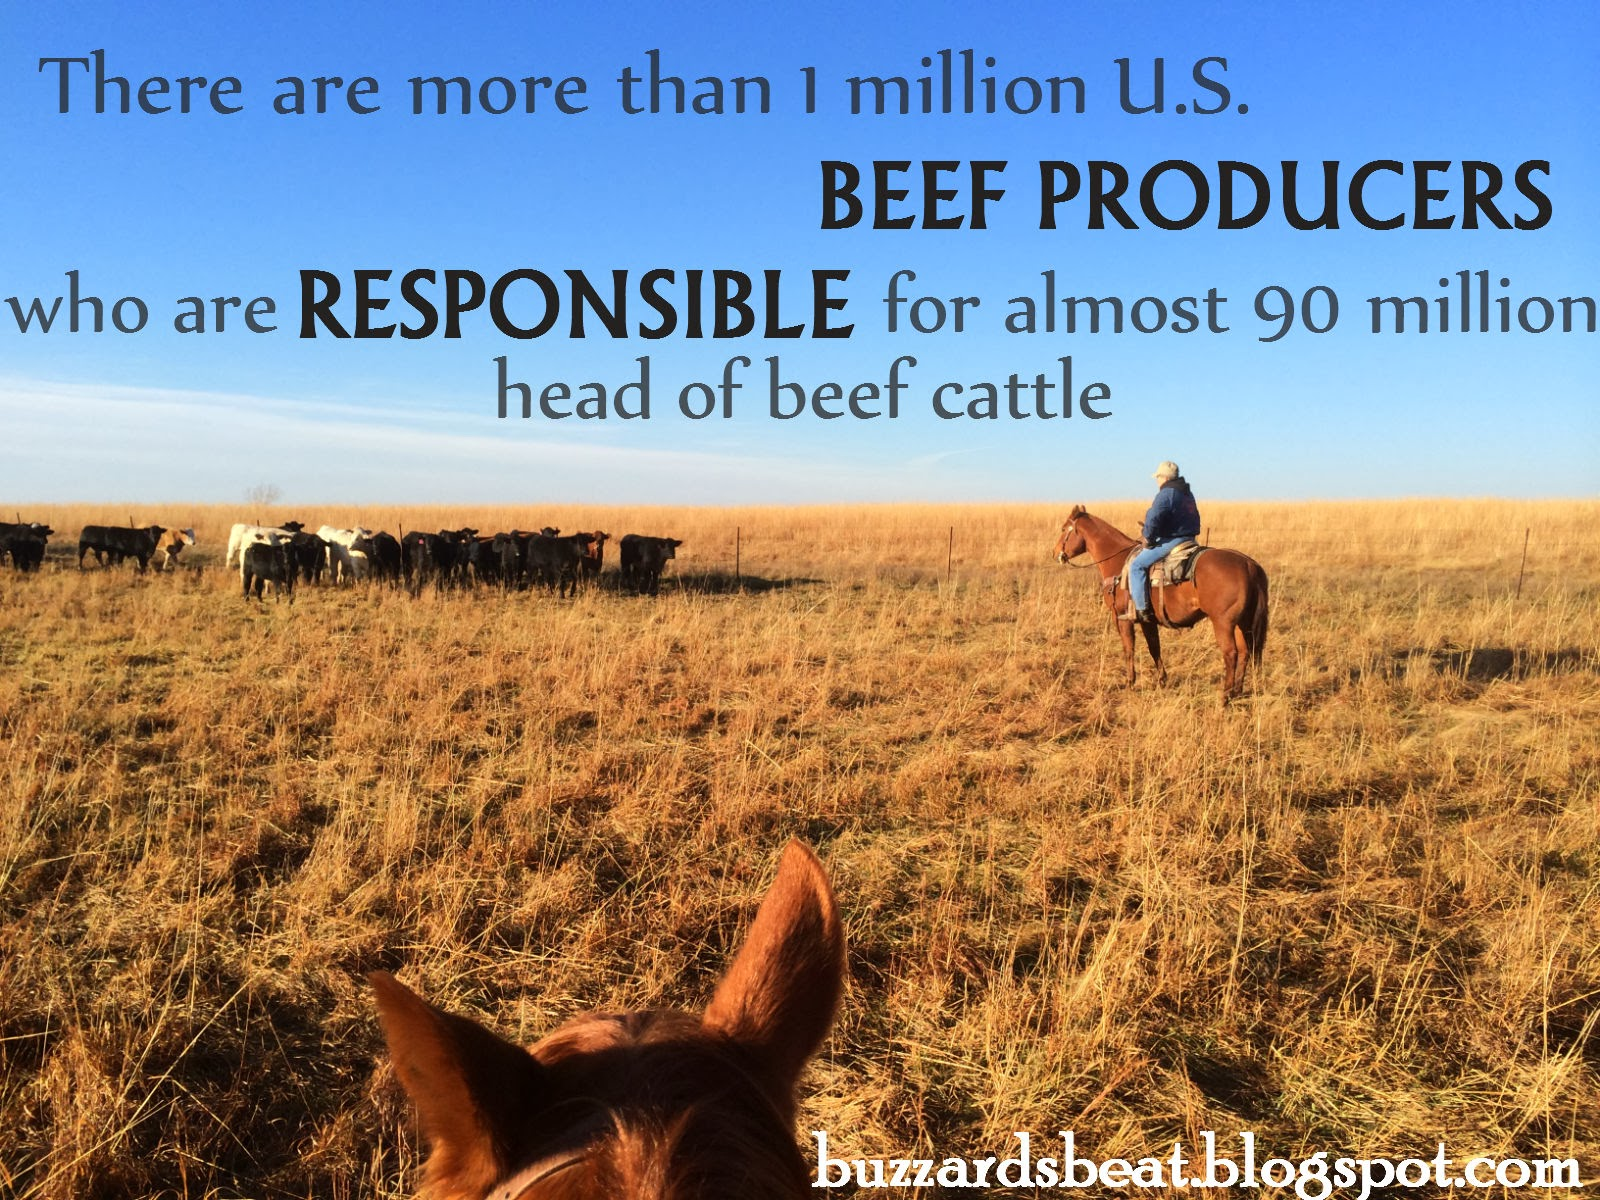 Responsible U.S. beef producers